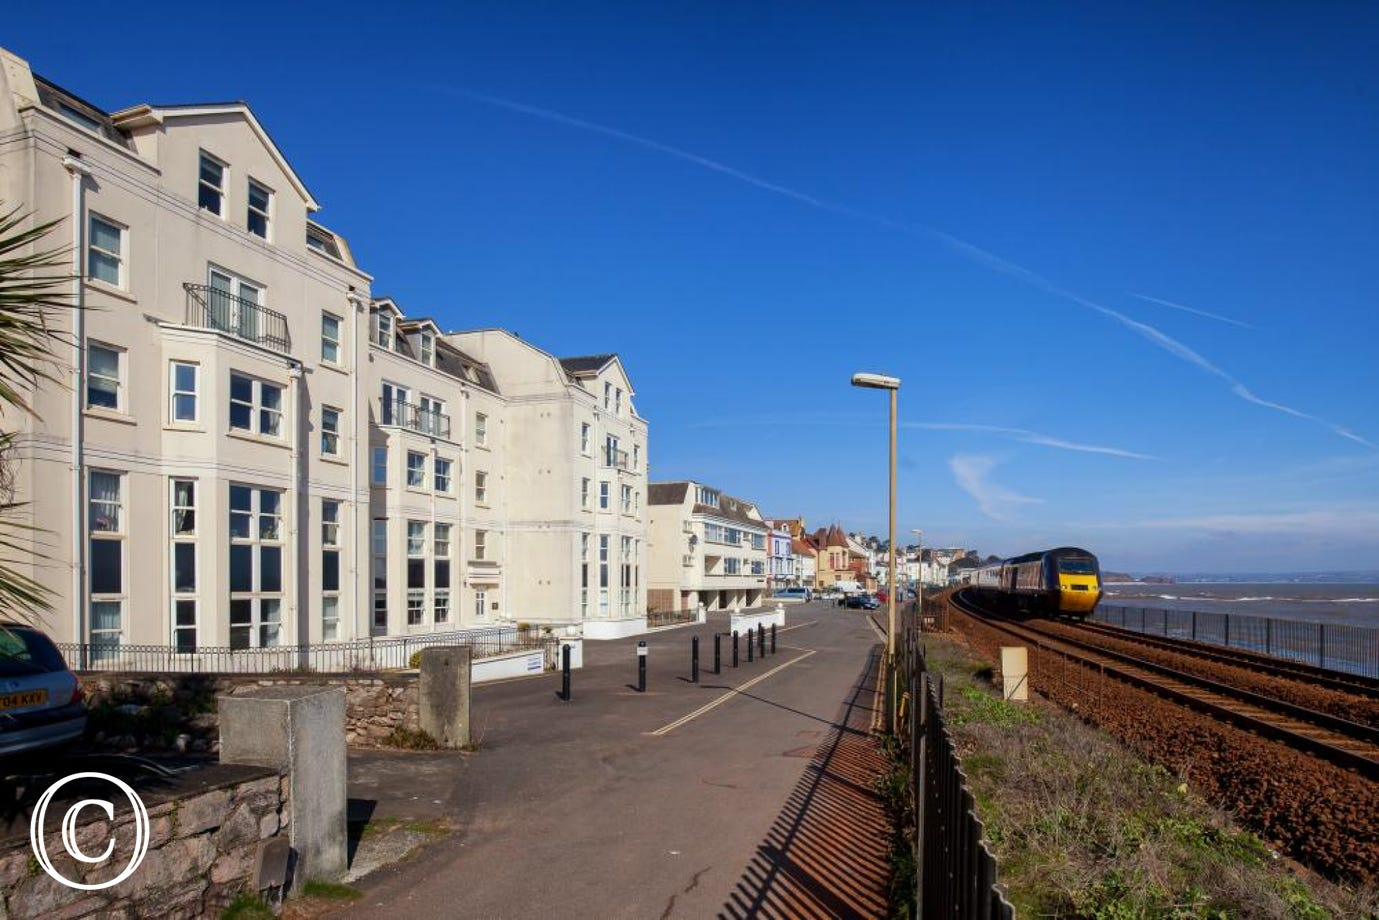 Self-Catering Holiday Apartment on Dawlish Seafront at 16 Great Cliff in Dawlish, South Devon